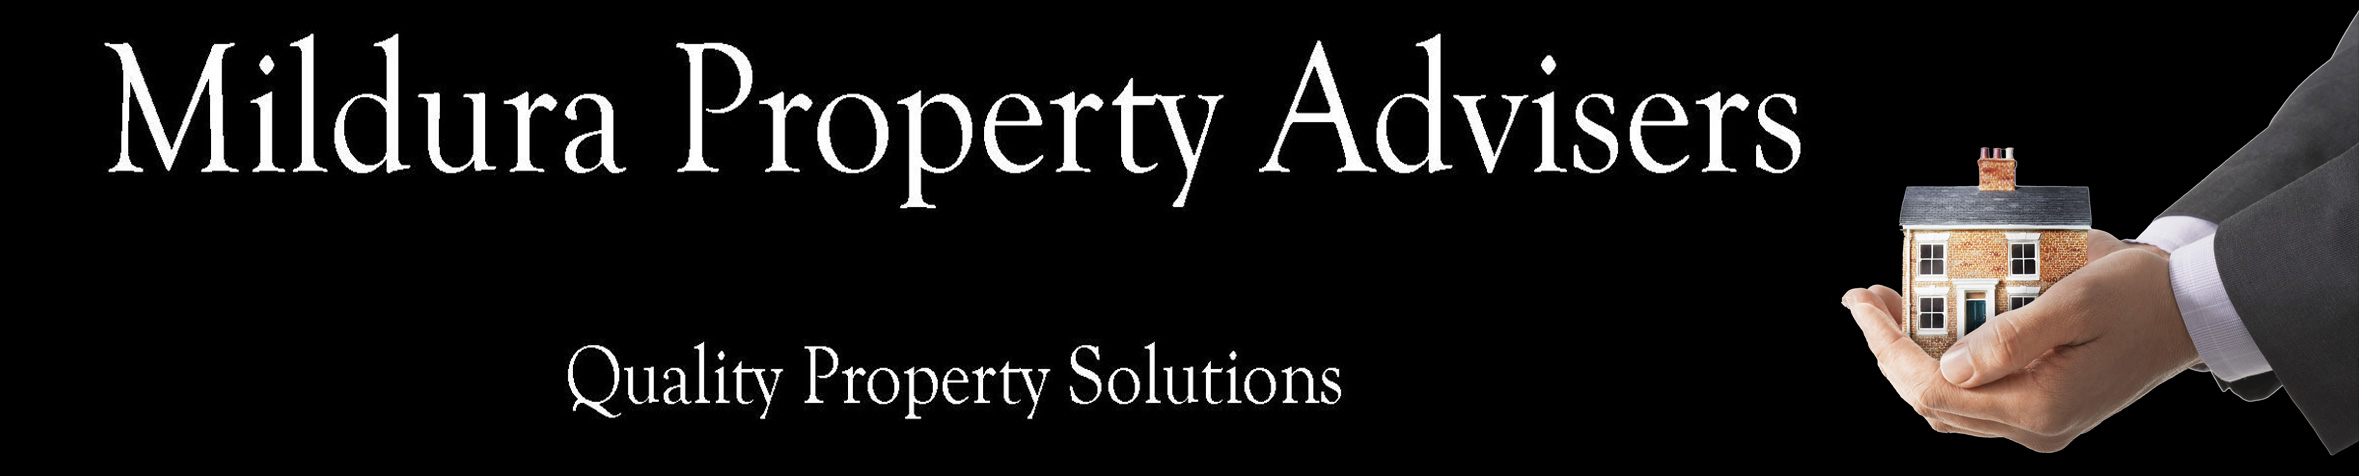 Mildura Property Advisers